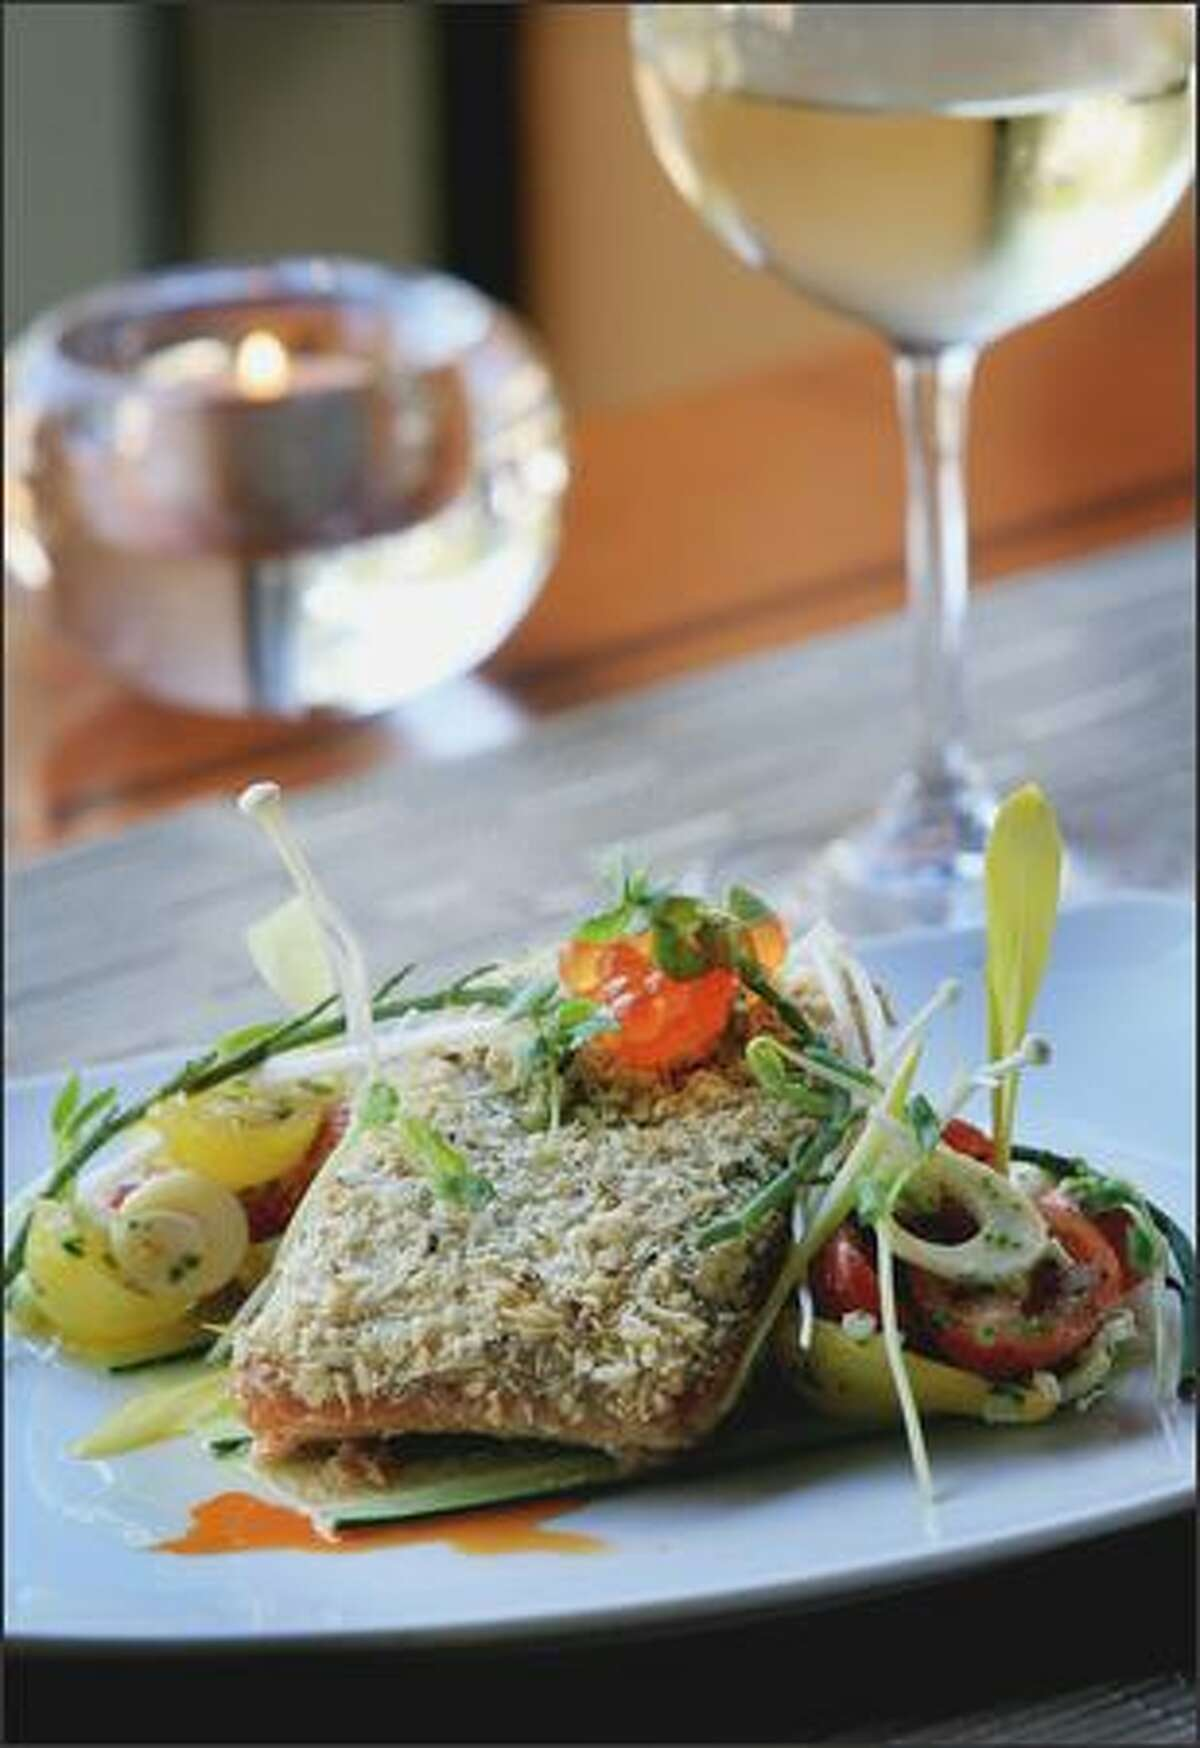 Troll-caught king salmon ($25) is enveloped in a panko crumb crust that was seasoned with fresh-grated wasabi.